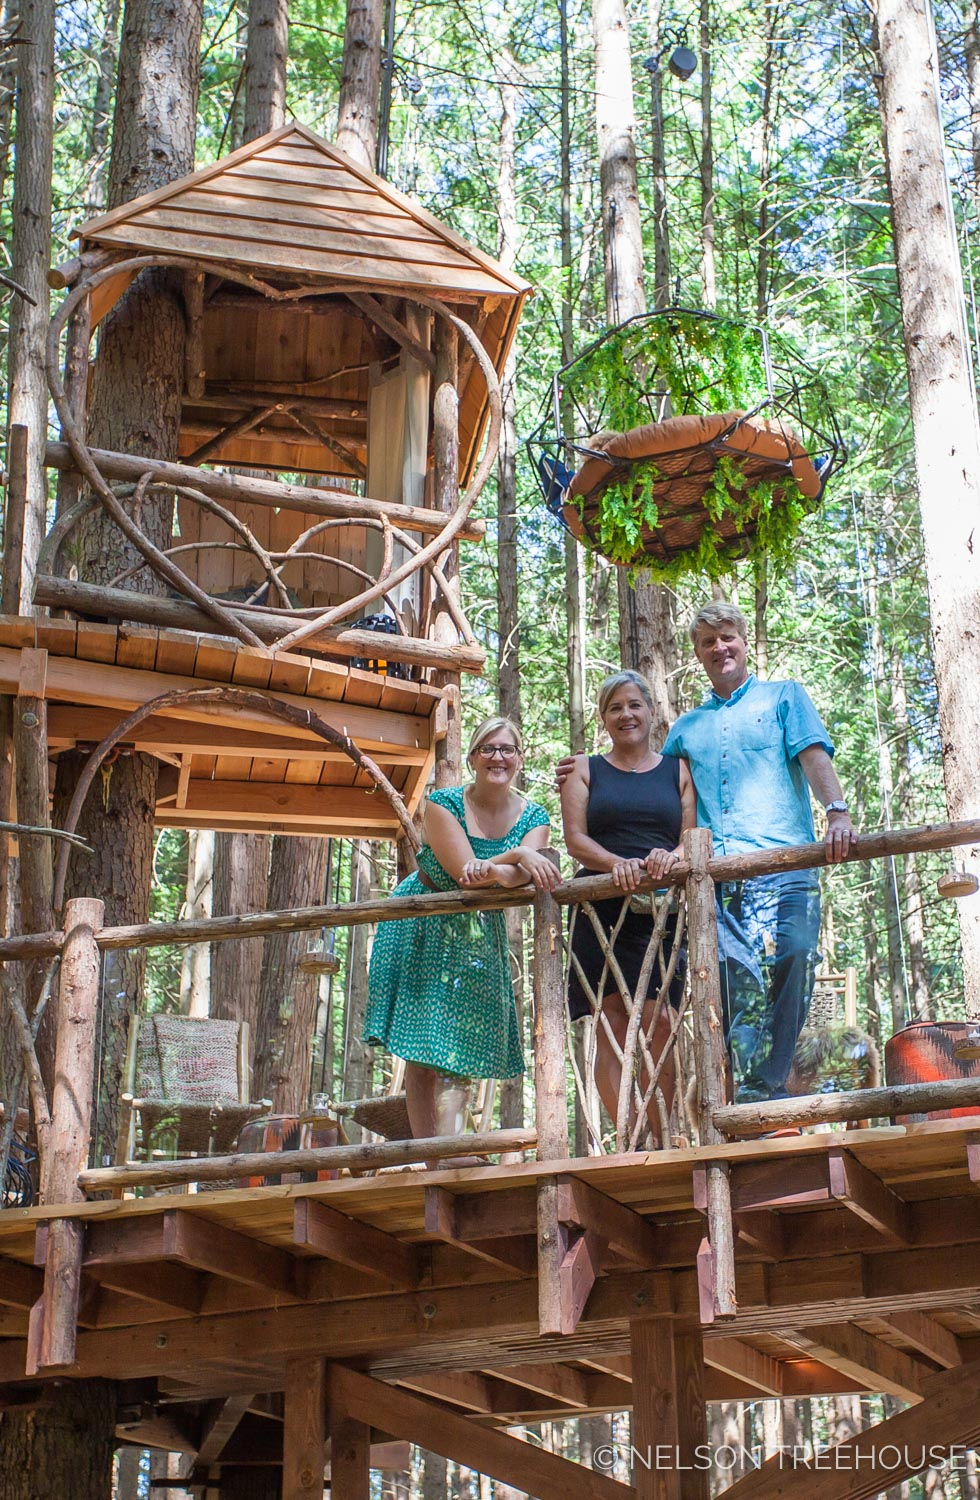 Treetop-Movie-Theater-2018-Nelson-Treehouse-59.jpg